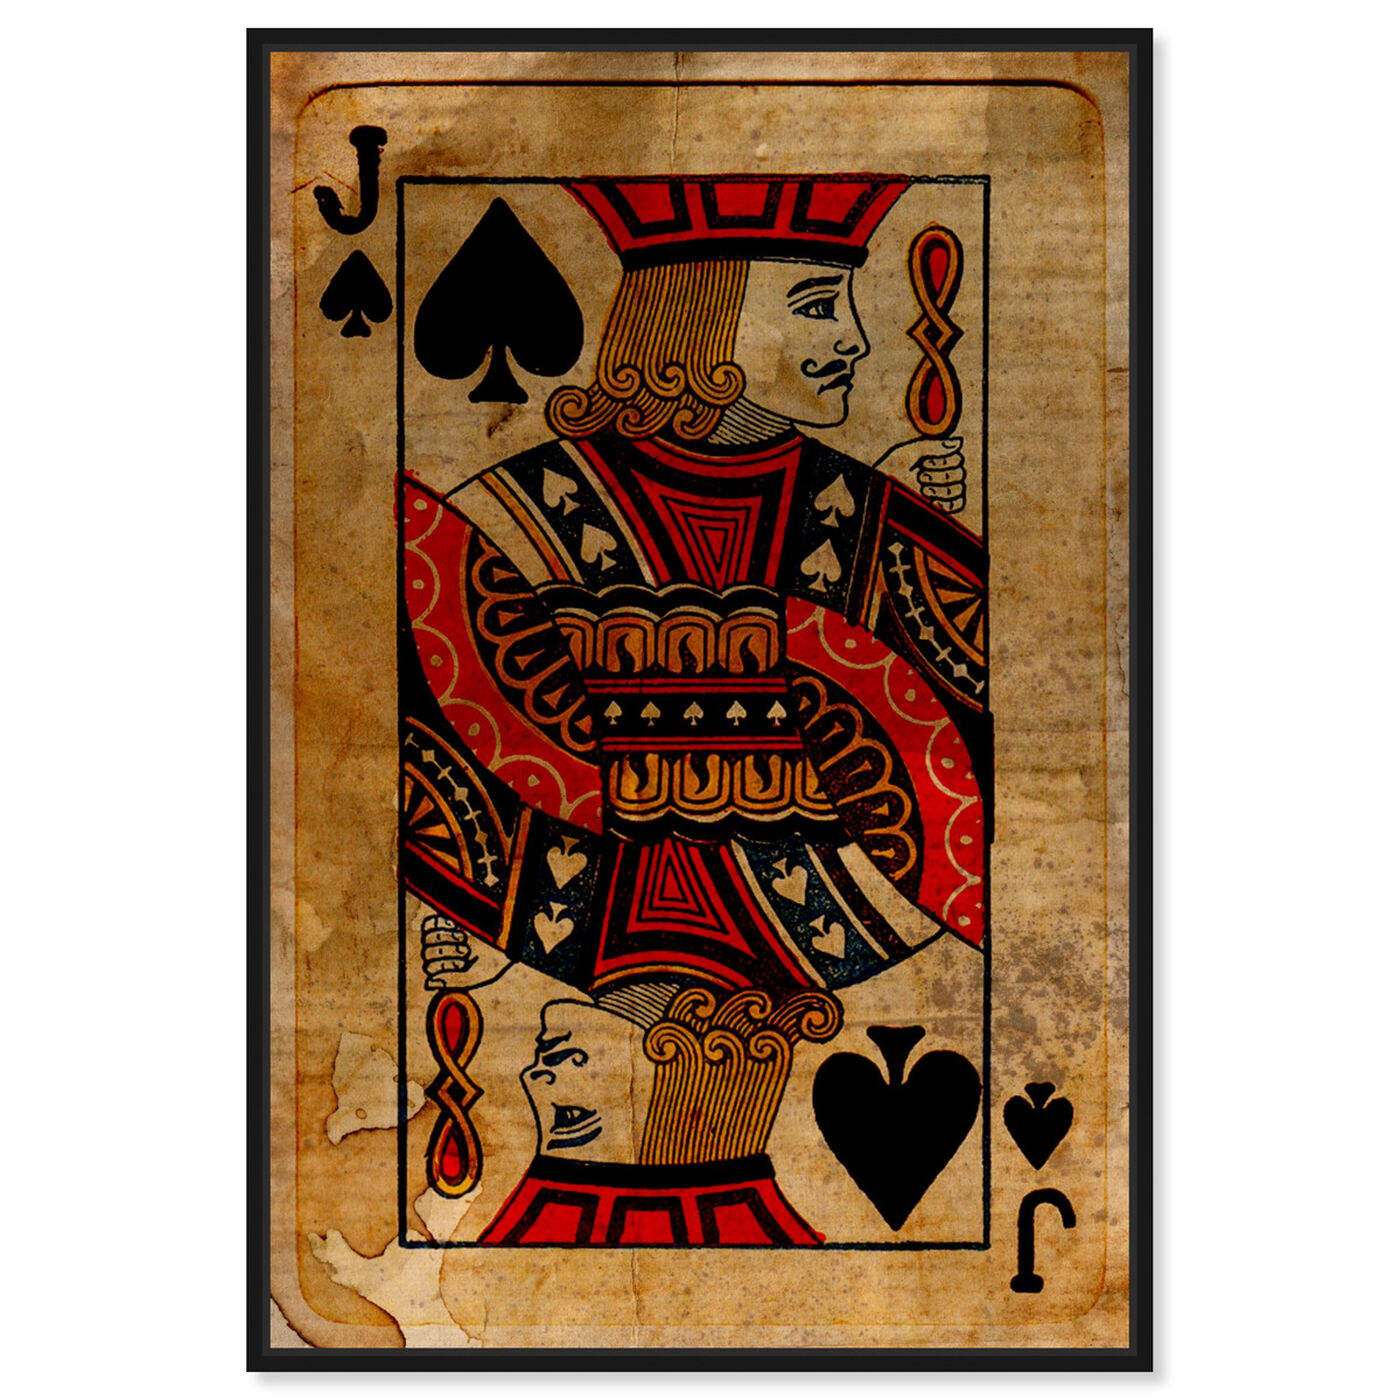 Front view of Jack of Spades featuring entertainment and hobbies and playing cards art.